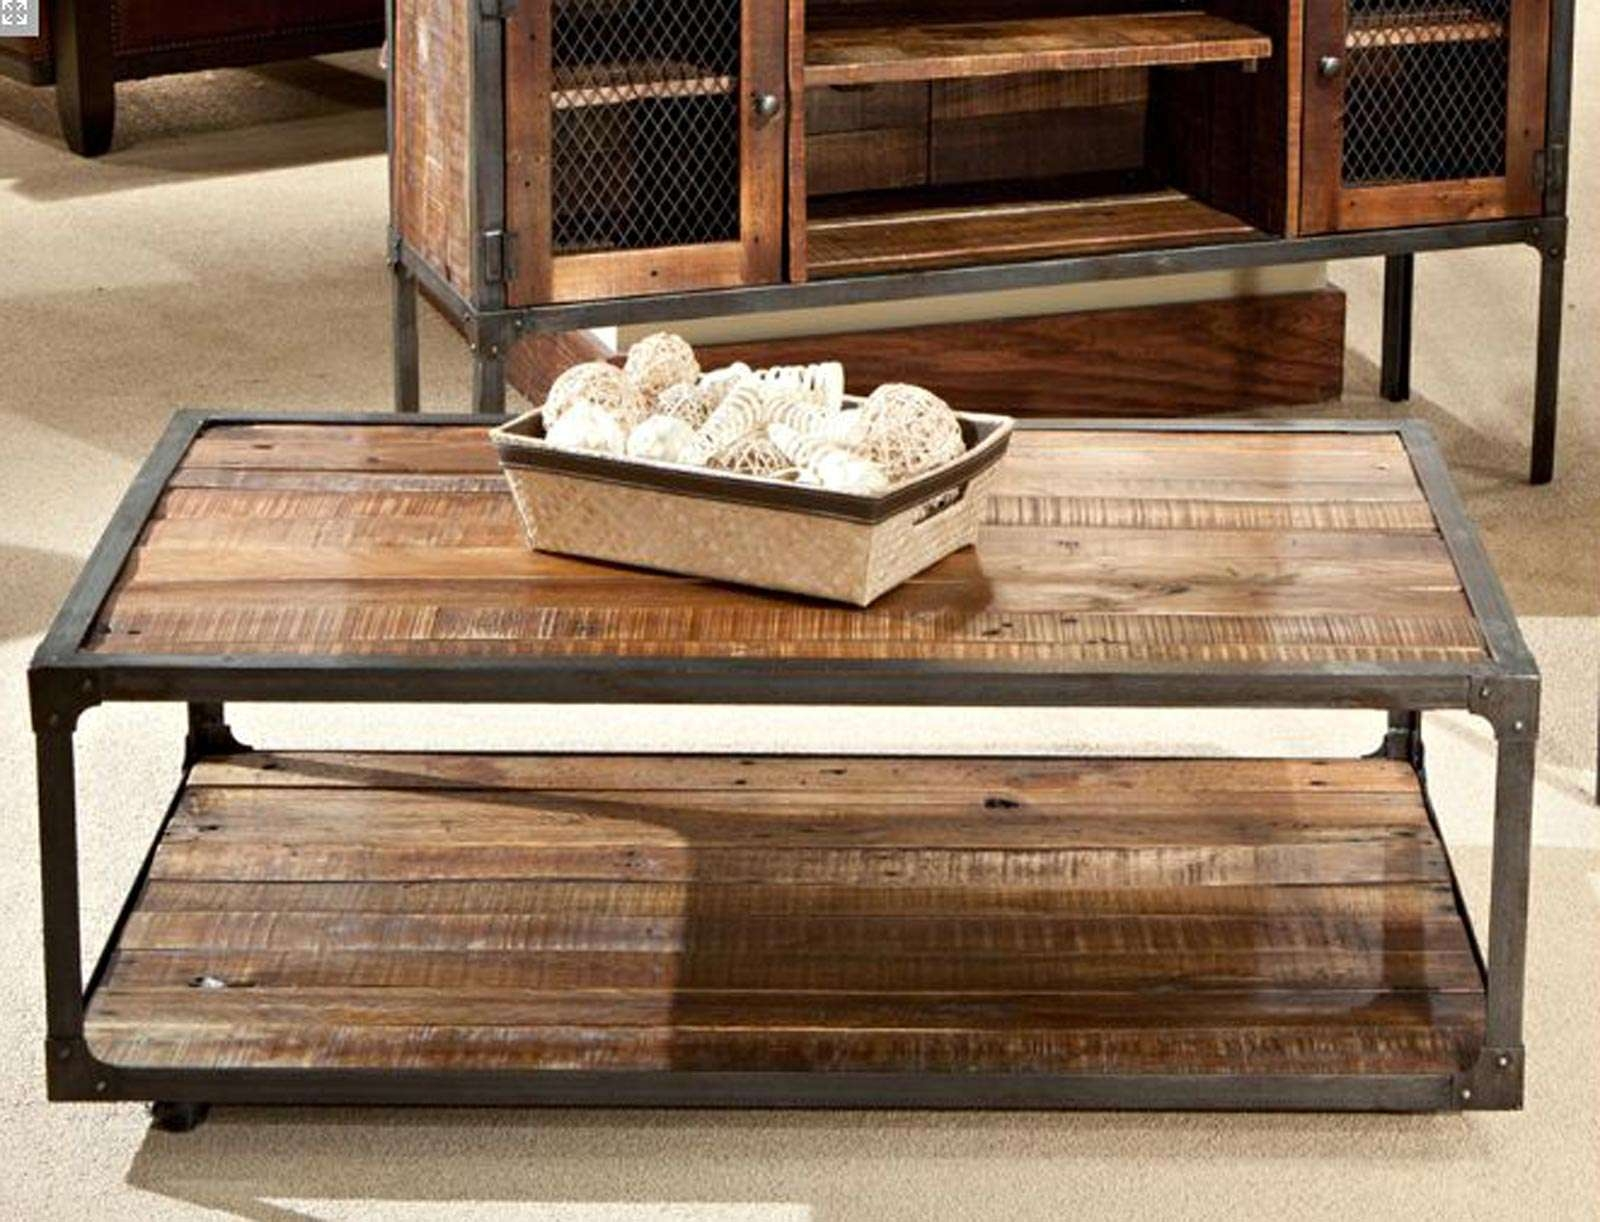 2017 Steel And Wood Coffee Tables Intended For Coffee Tables : Exciting Wood And Iron Coffee Table Set Sets (View 12 of 20)